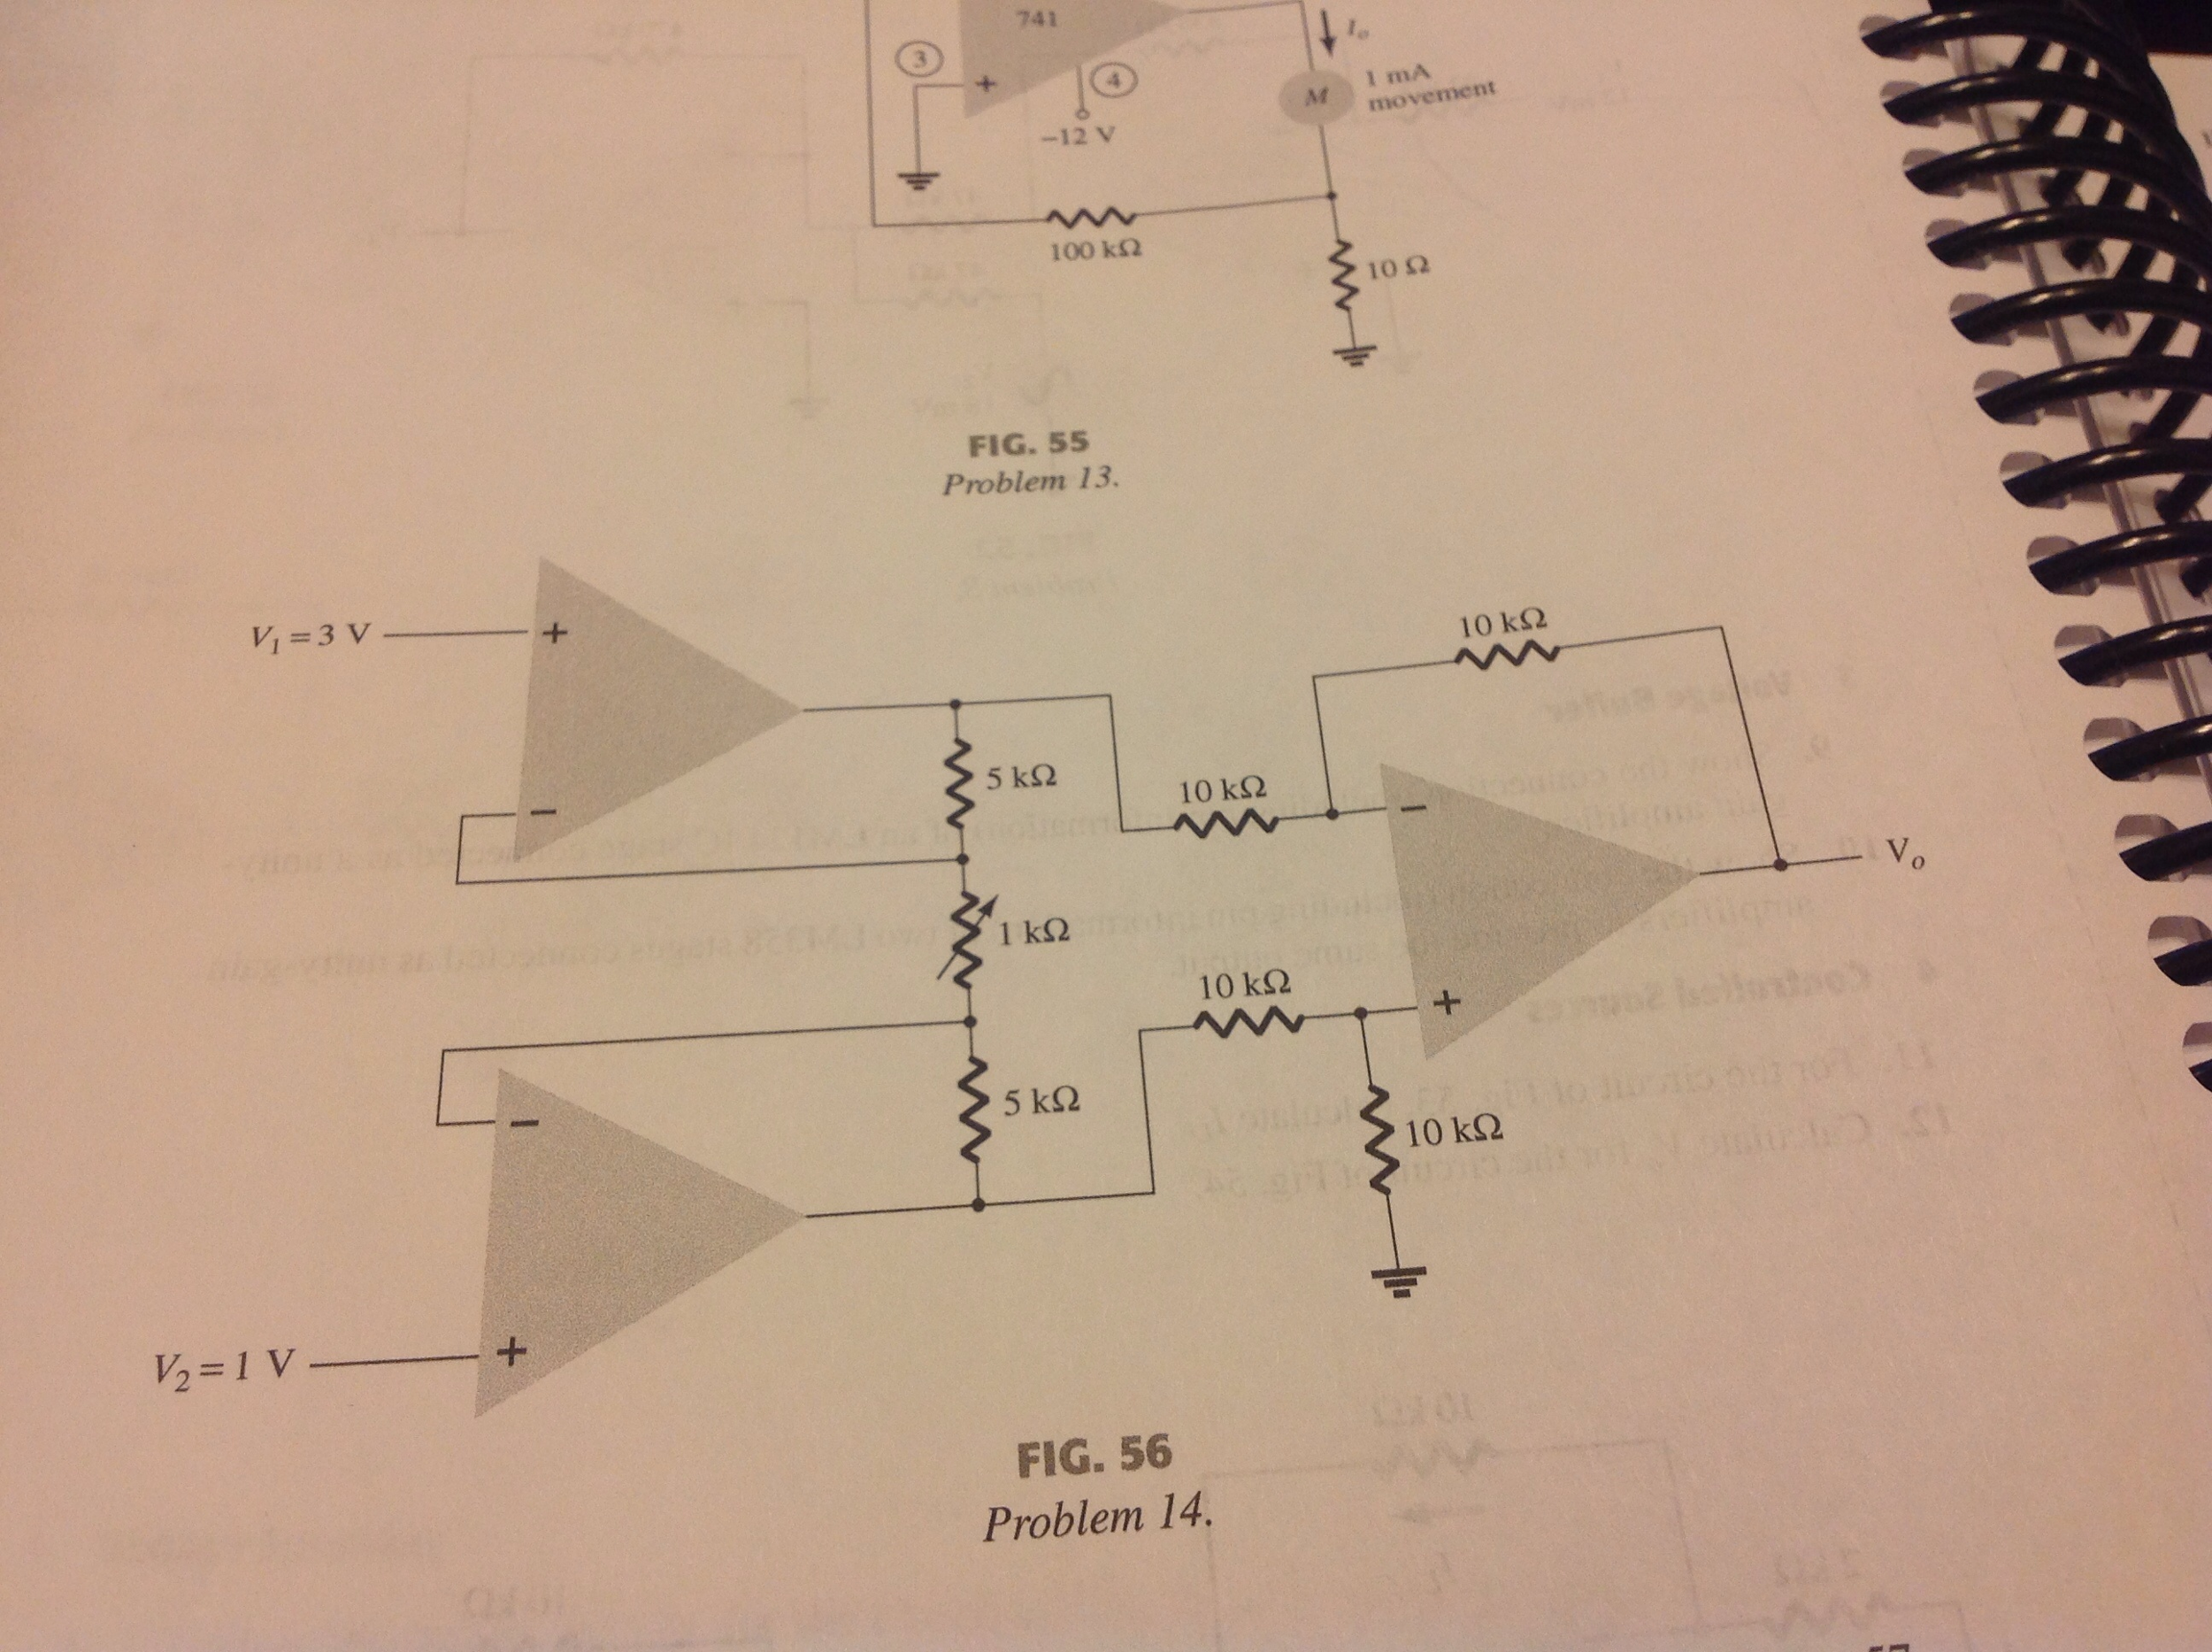 Calculate V0 for the circuit&n